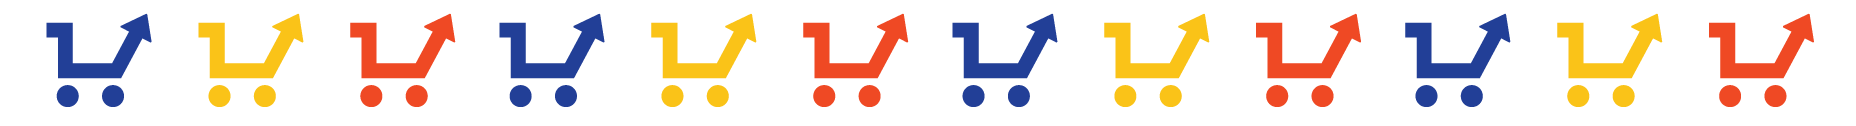 ALDI_cart_Graphicpng-16.png